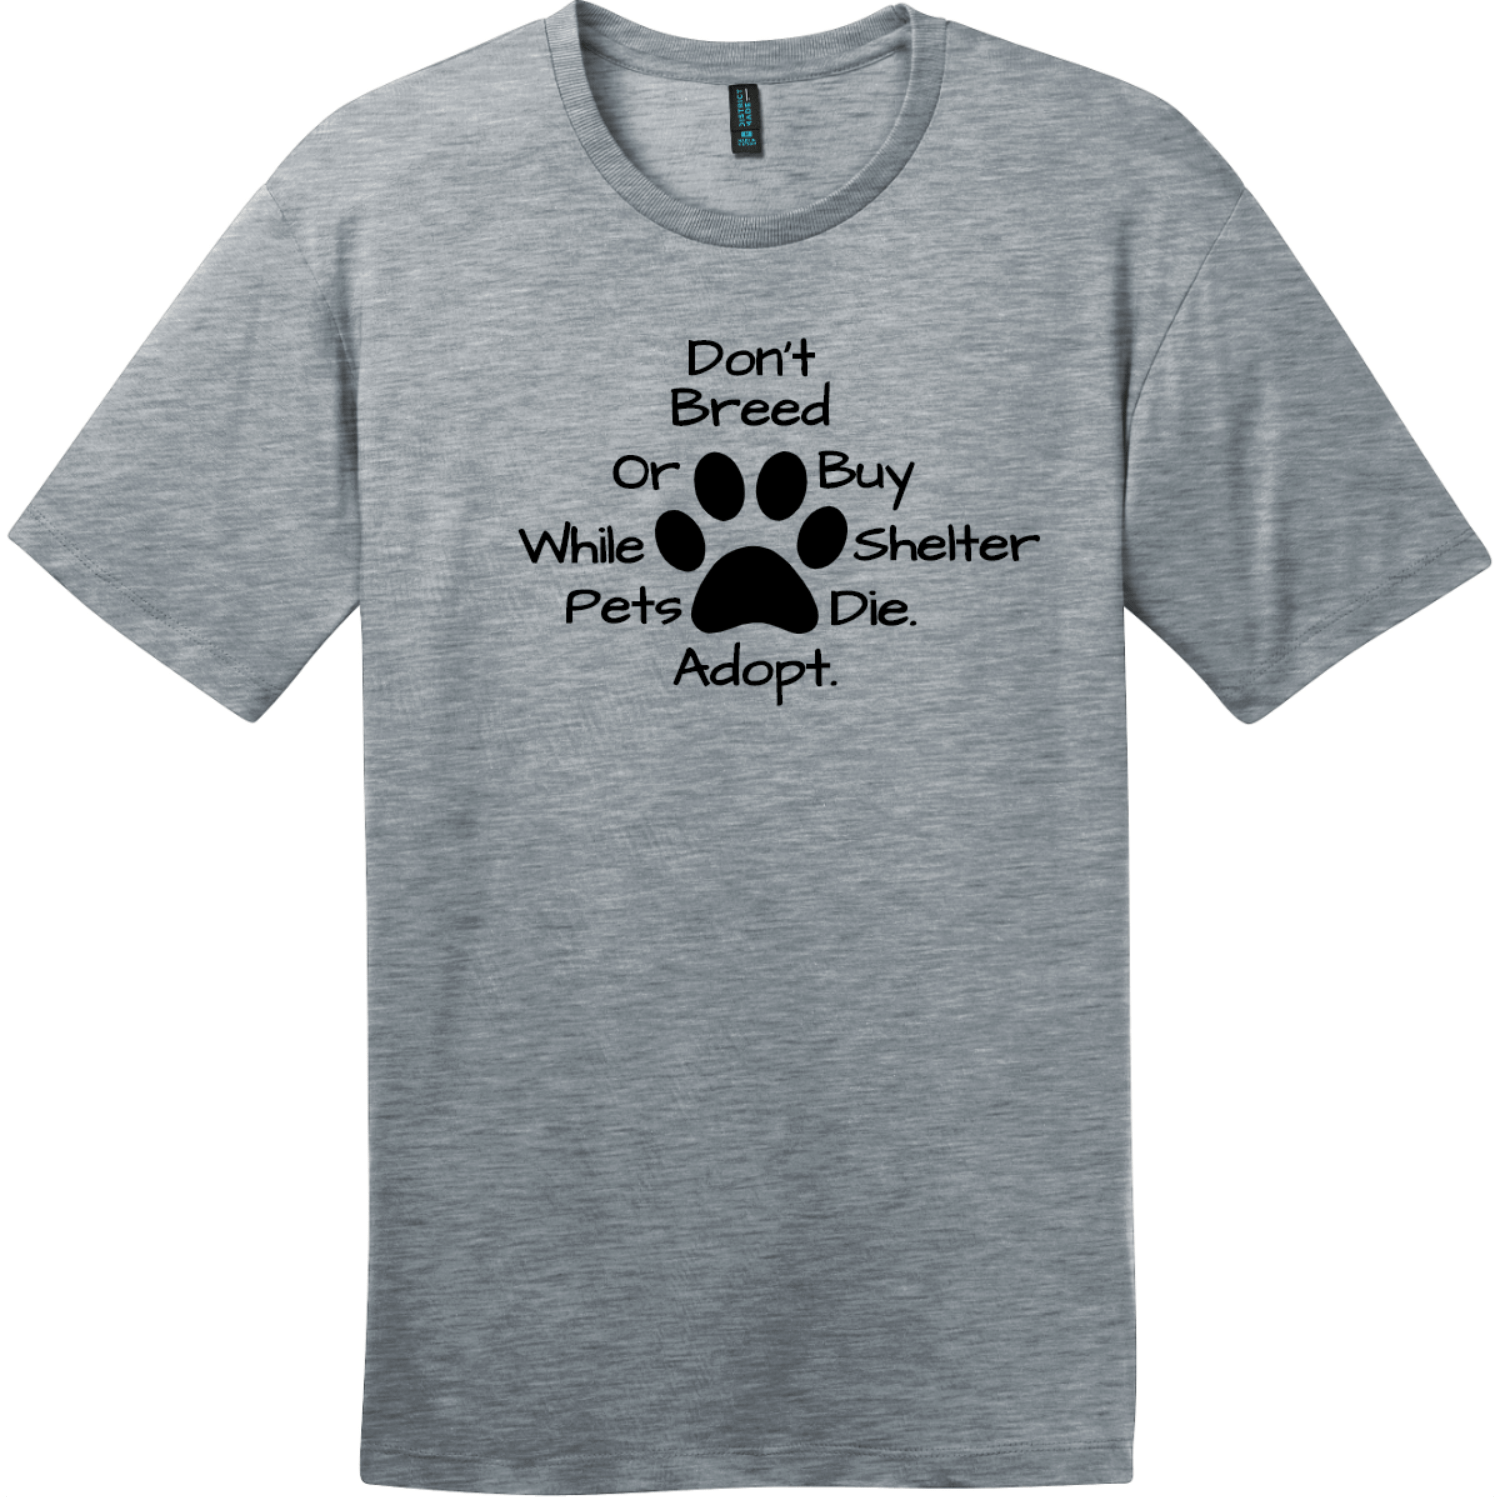 Don't Breed Or Buy While Shelter Pets Die T-Shirt Heathered Steel District Perfect Weight Tee DT104